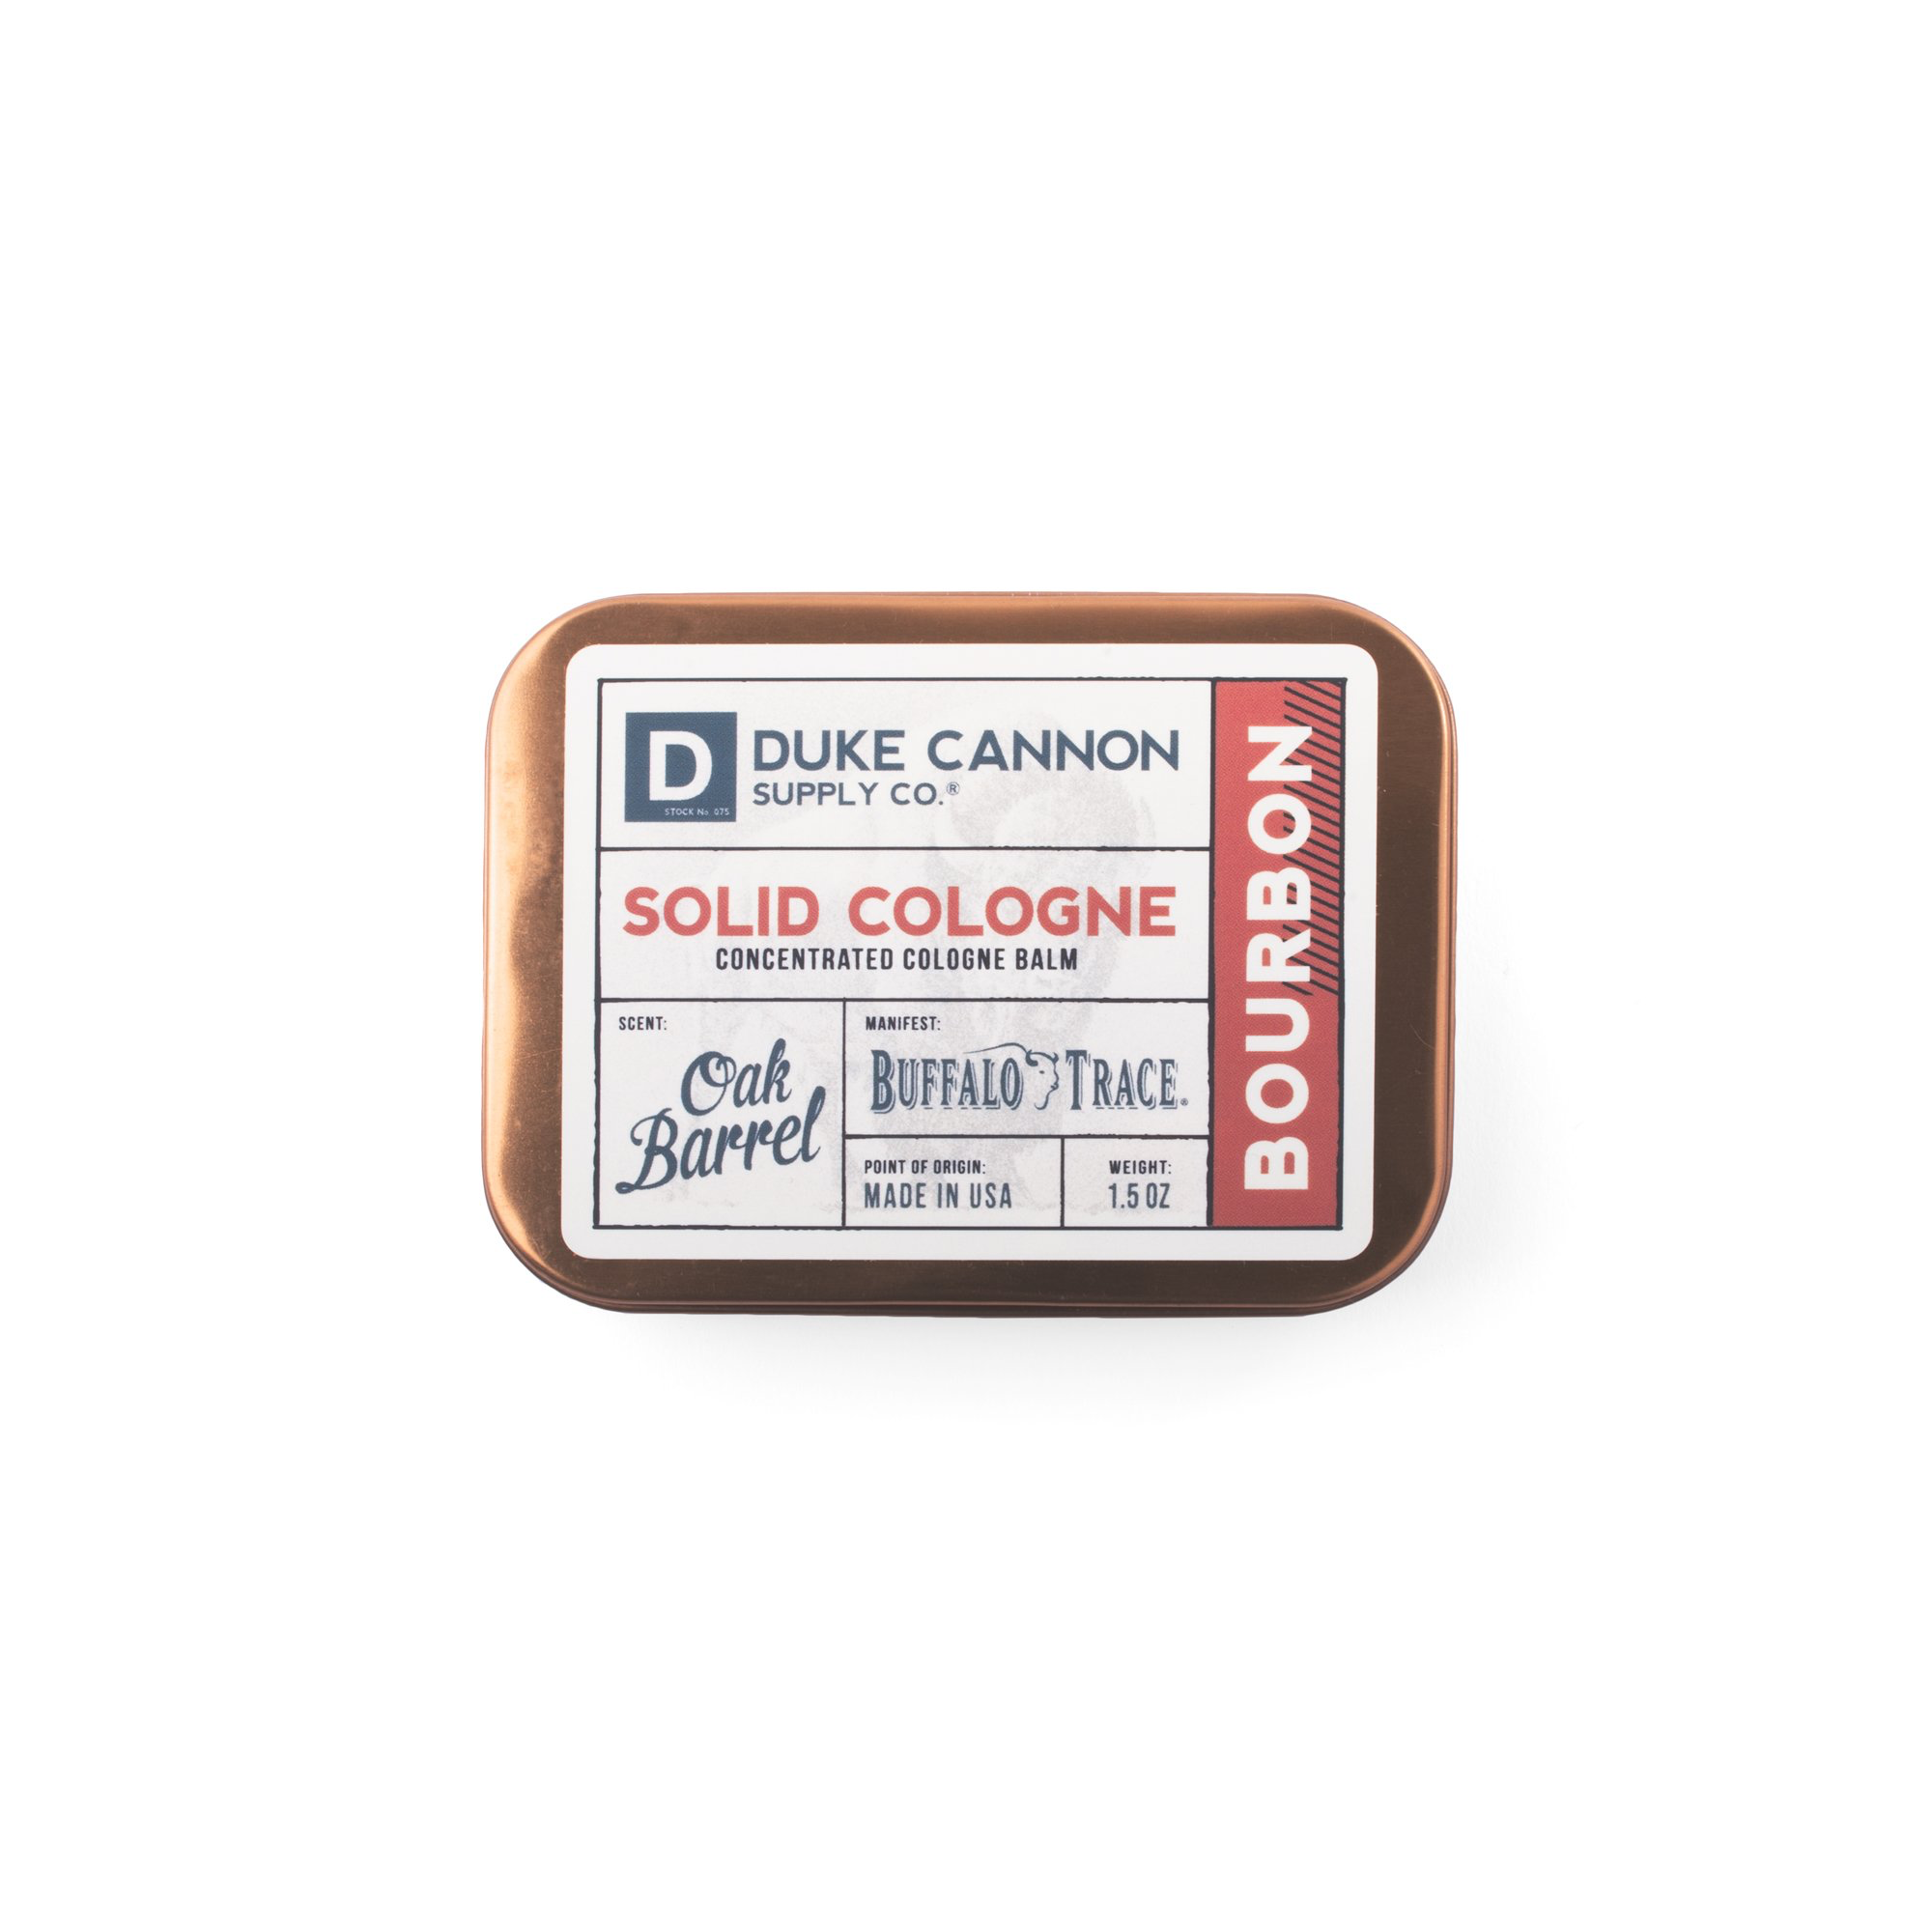 Duke Cannon Supply Co. Solid Cologne - Bourbon